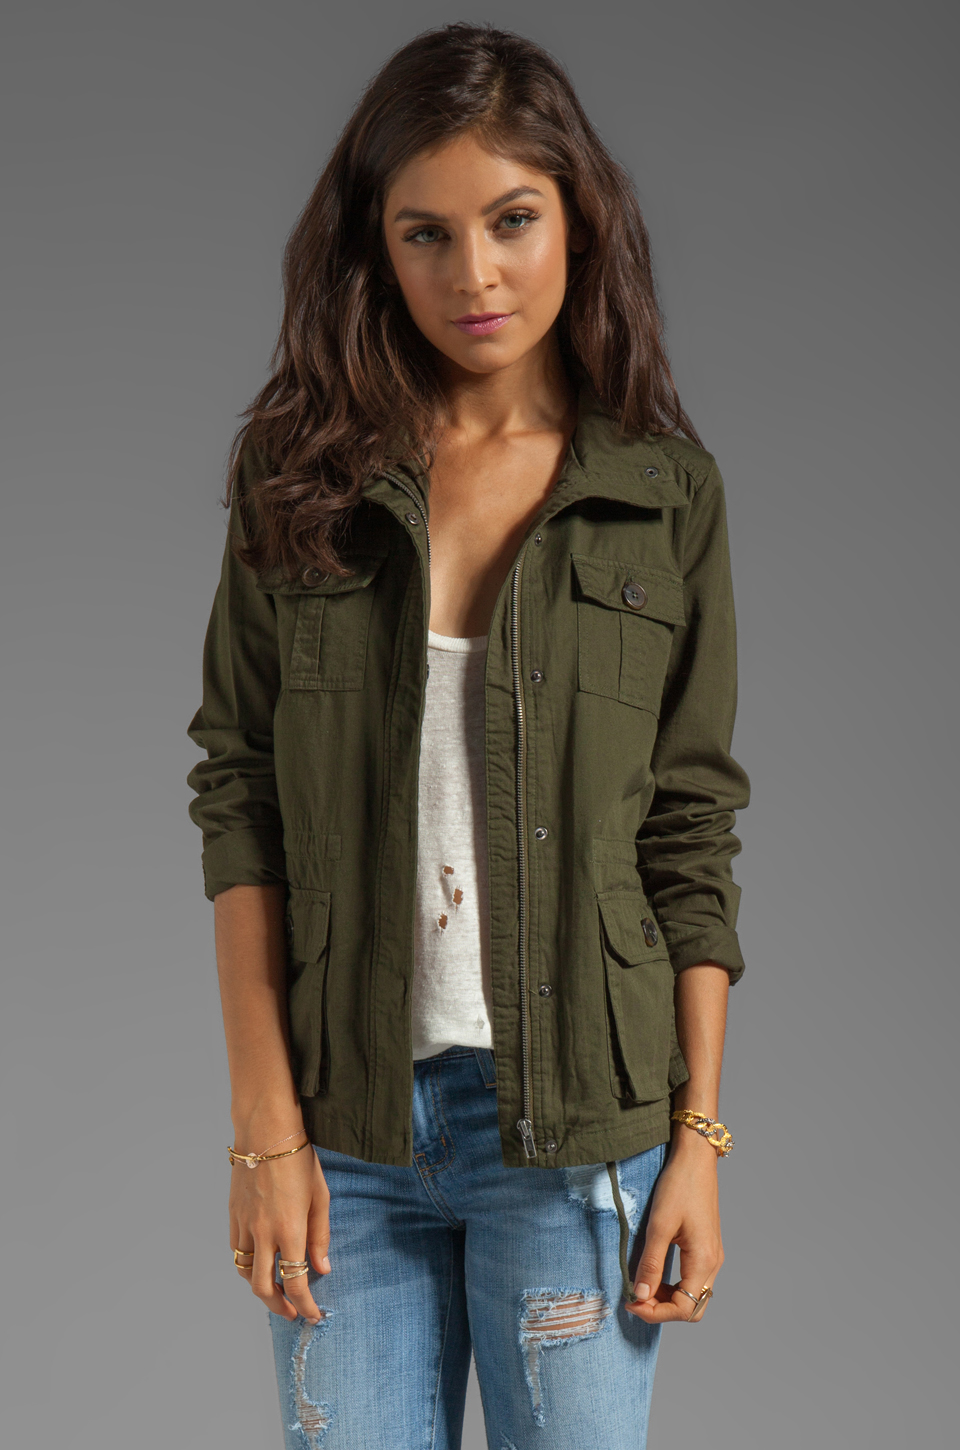 BB Dakota Leslie Cotton Twill Army Jacket in Army Green | REVOLVE